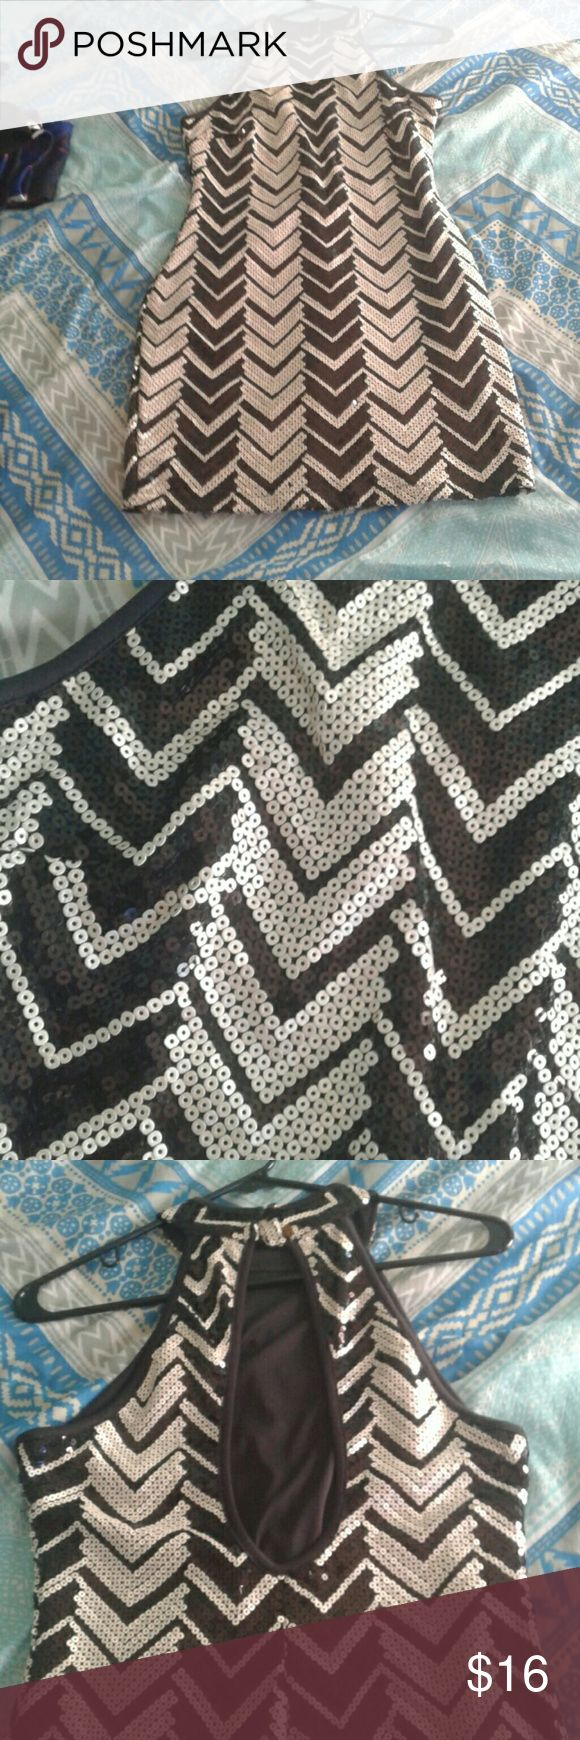 Black and white sequin dress Midi length worn only ONCE honey and rosie Dresses Midi